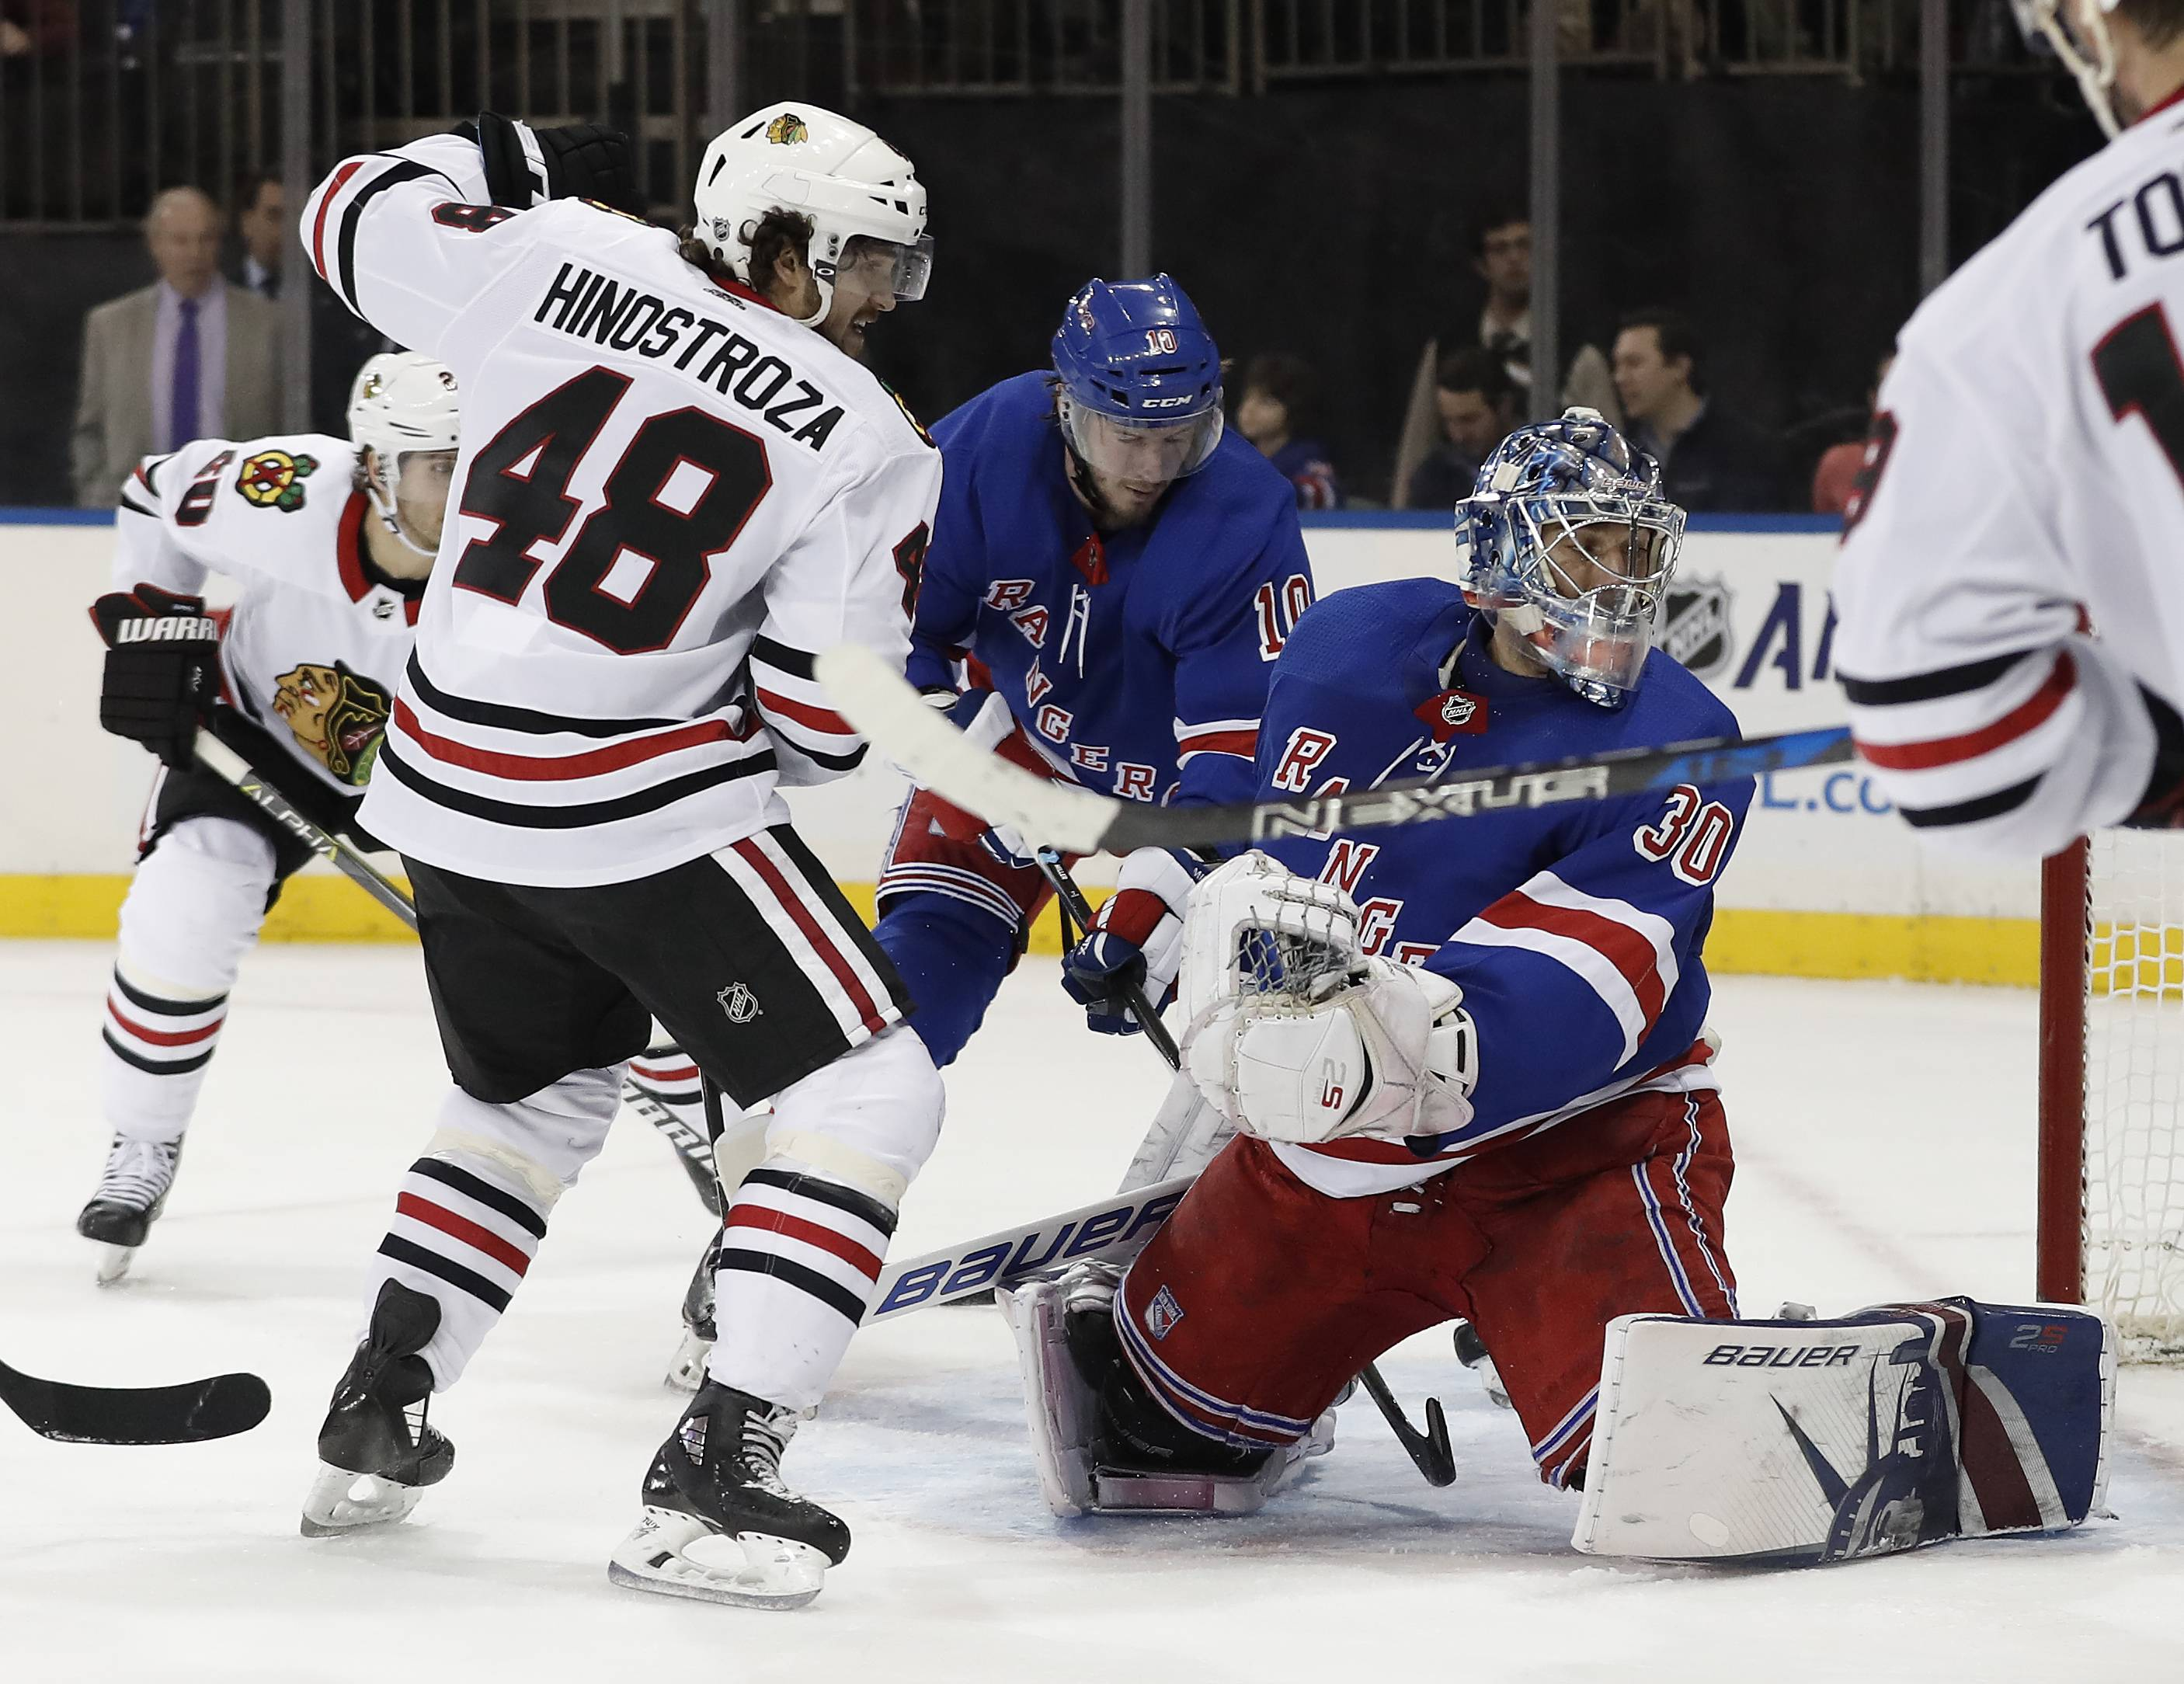 Chicago Blackhawks left wing Vinnie Hinostroza, seen here scoring against New York Rangers goaltender Henrik Lundqvist last Wednesday, has added a much needed spark to the top line.